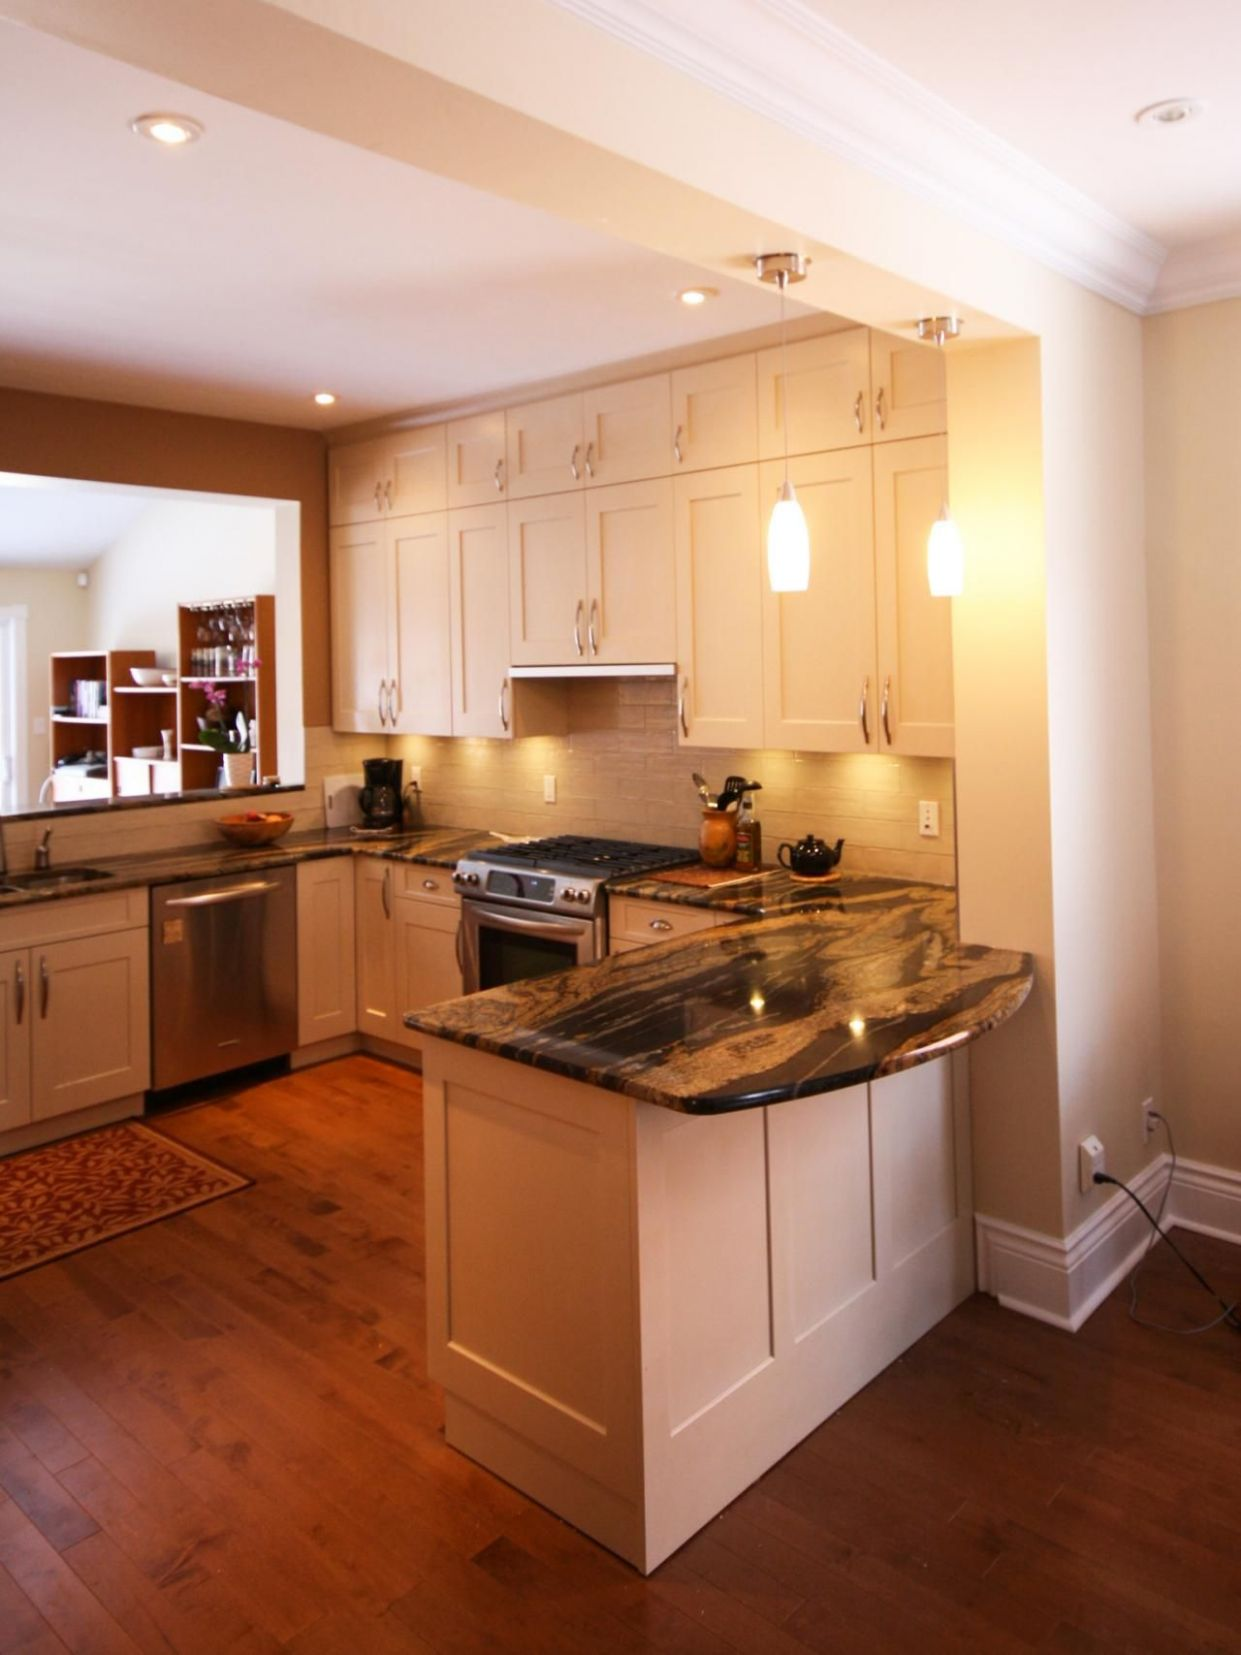 U-Shaped Kitchen Design Ideas: Pictures & Ideas From (With images ..